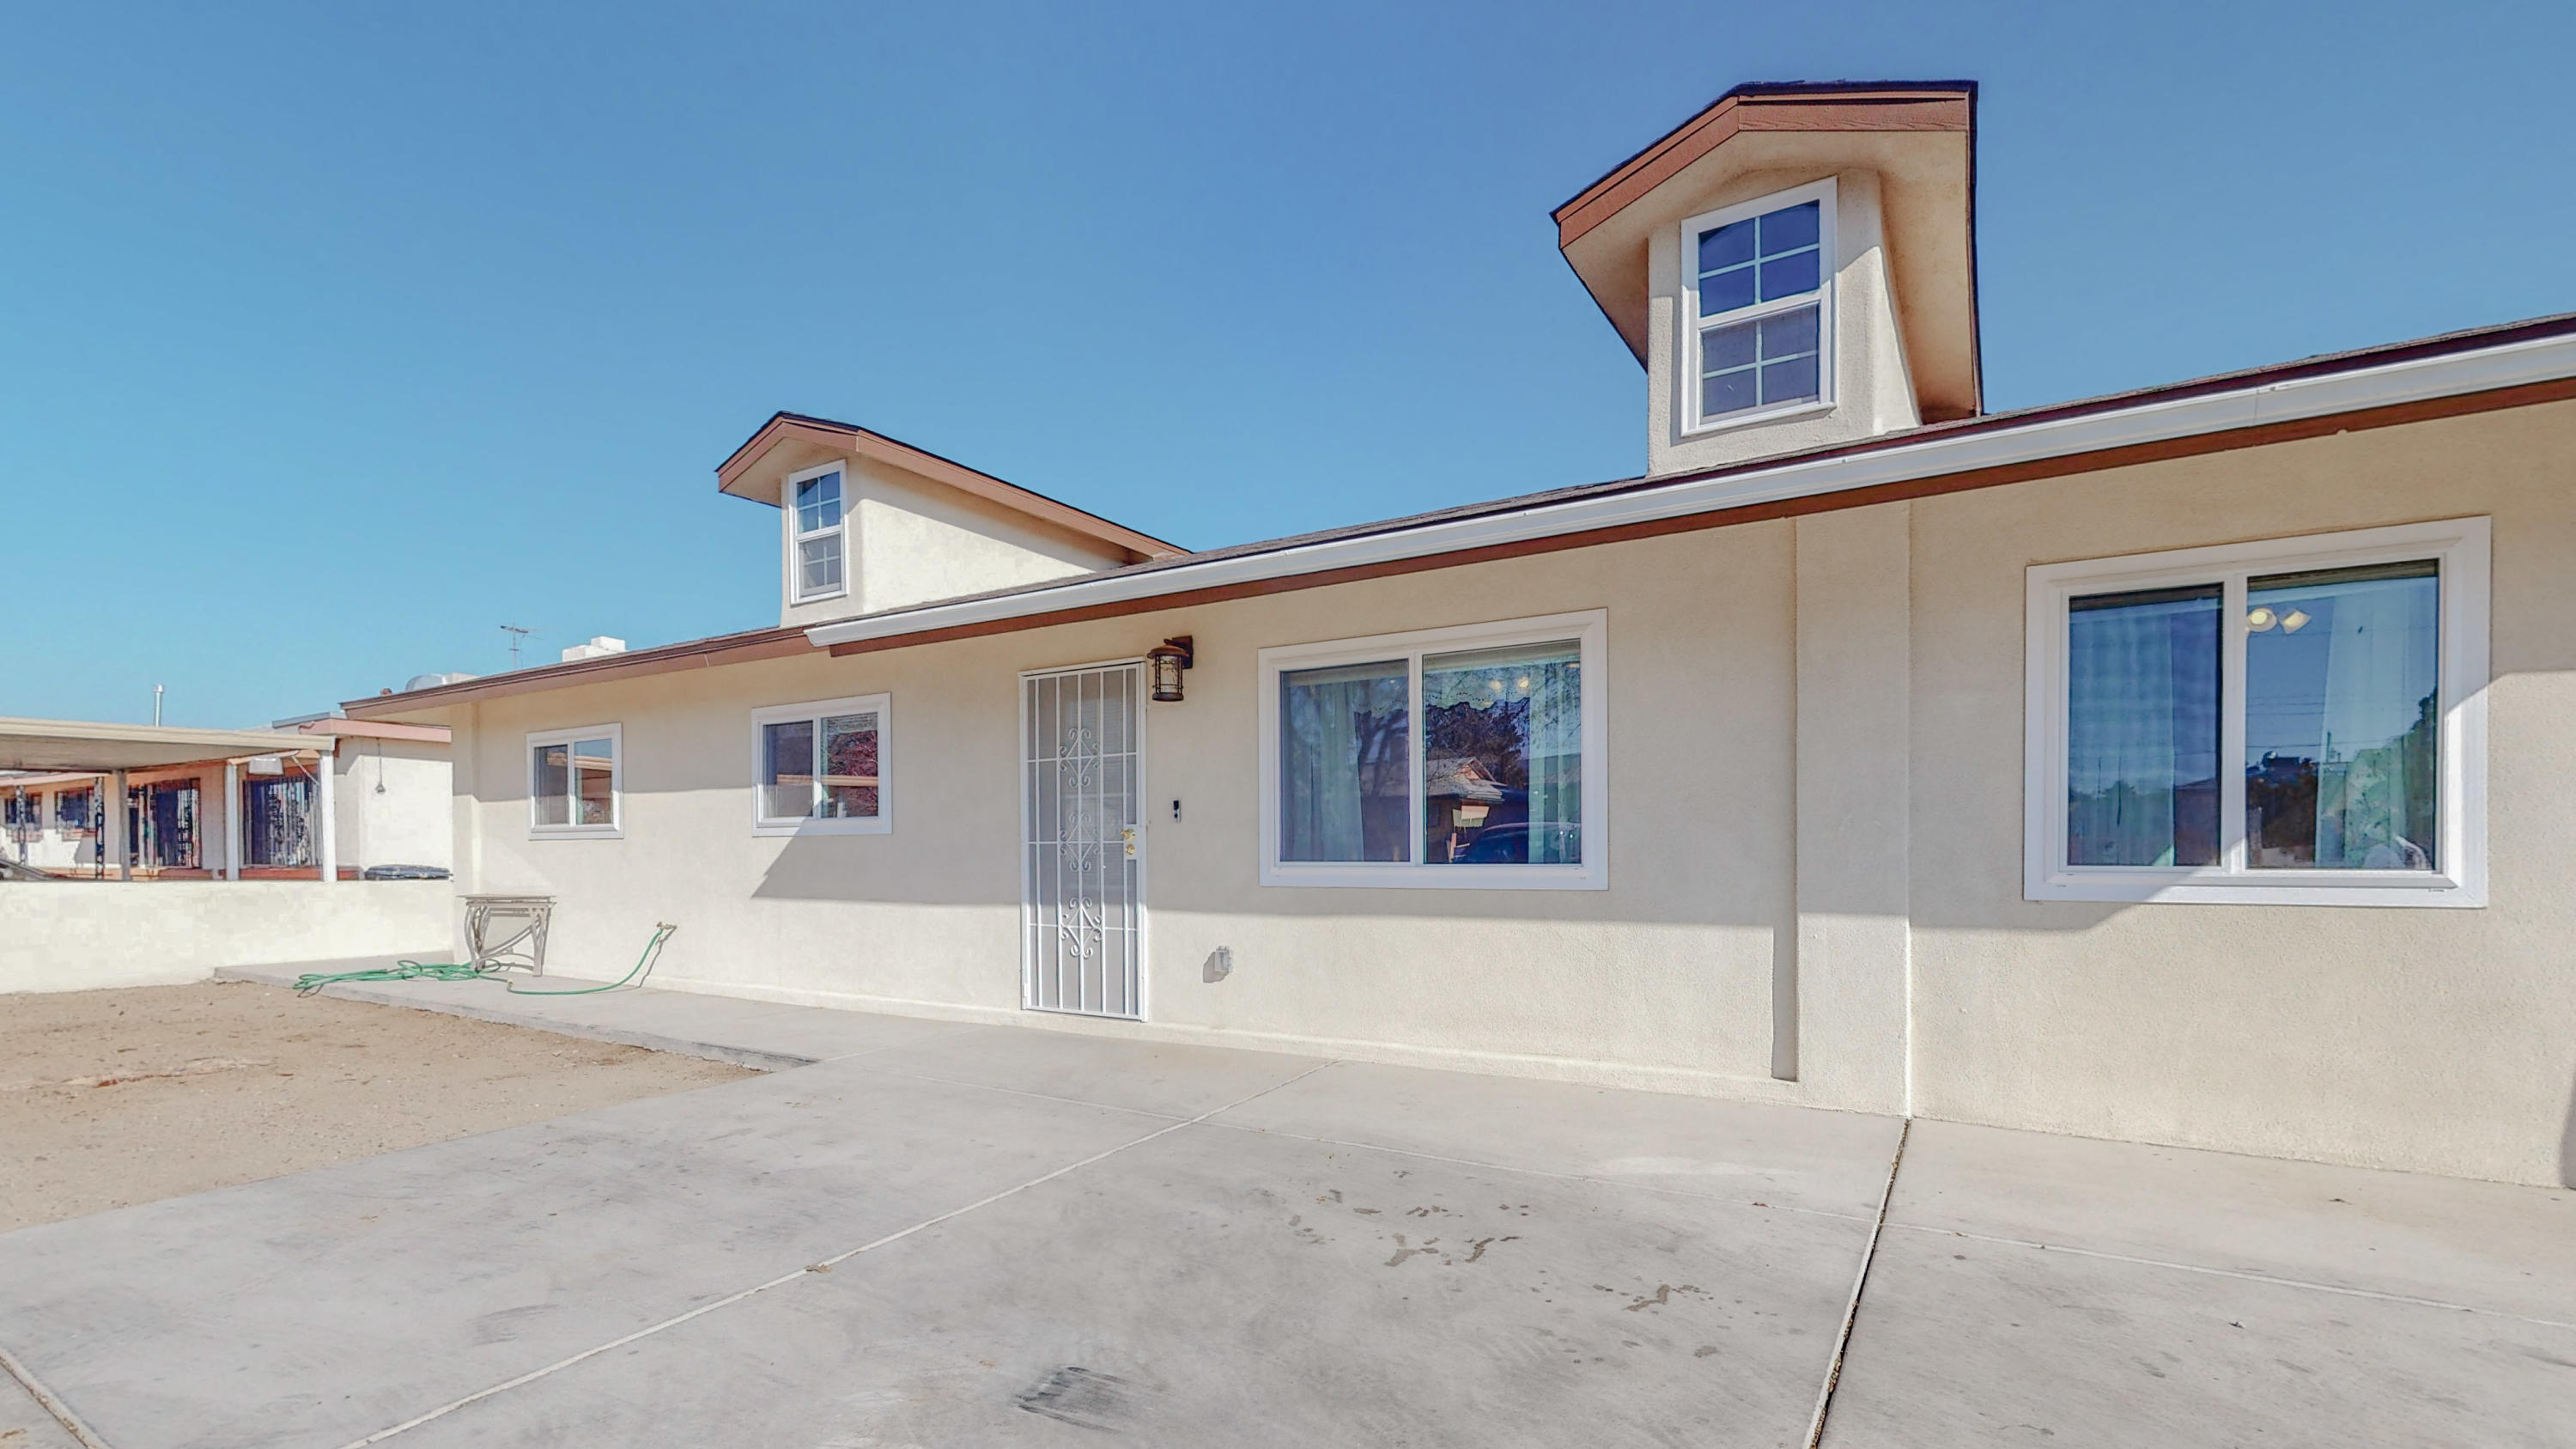 Come see this lovely possible 5 bedroom home.  It features 2 master suites with there own bathroom.  Newer windows, newer light fixtures, newer appliances, and granite counter tops.  There is also a newer hot water heater, newer hvac unit. and newer stucco.  Great storage and well laid out floorplan.  Great space for plenty of people or things.  This home has wonderful view from the back yard.  Great location too!